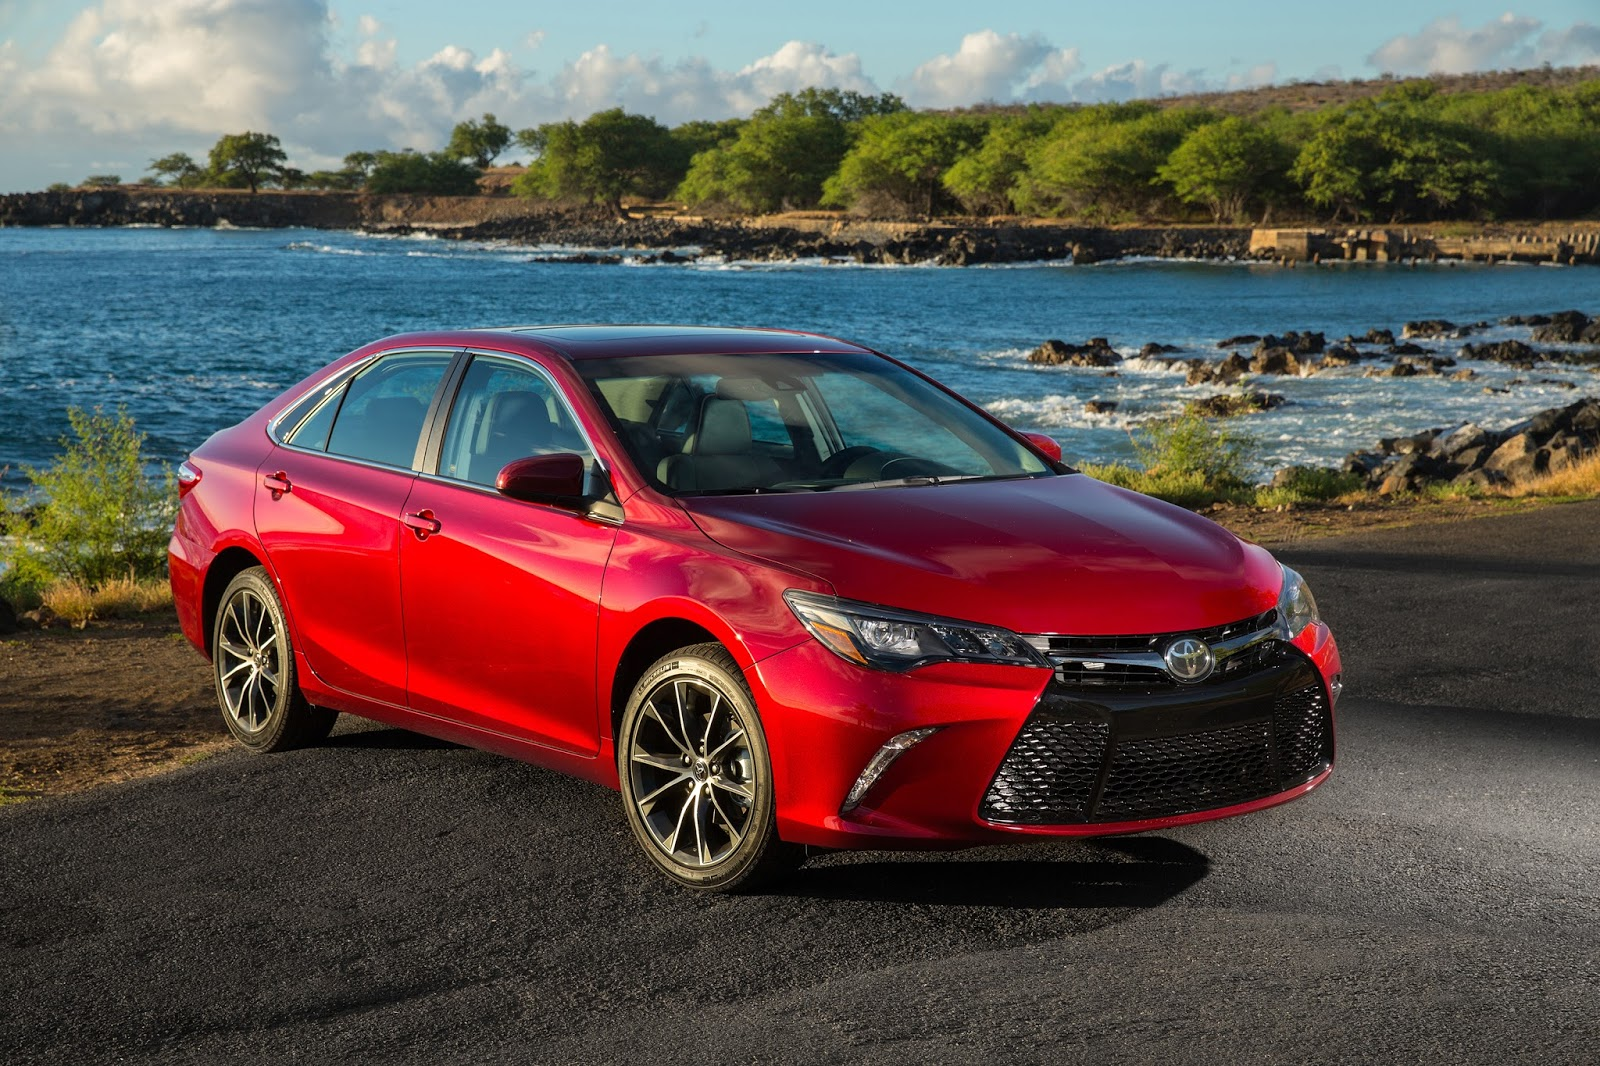 Which Accessories Are Available For The 2016 Toyota Camry